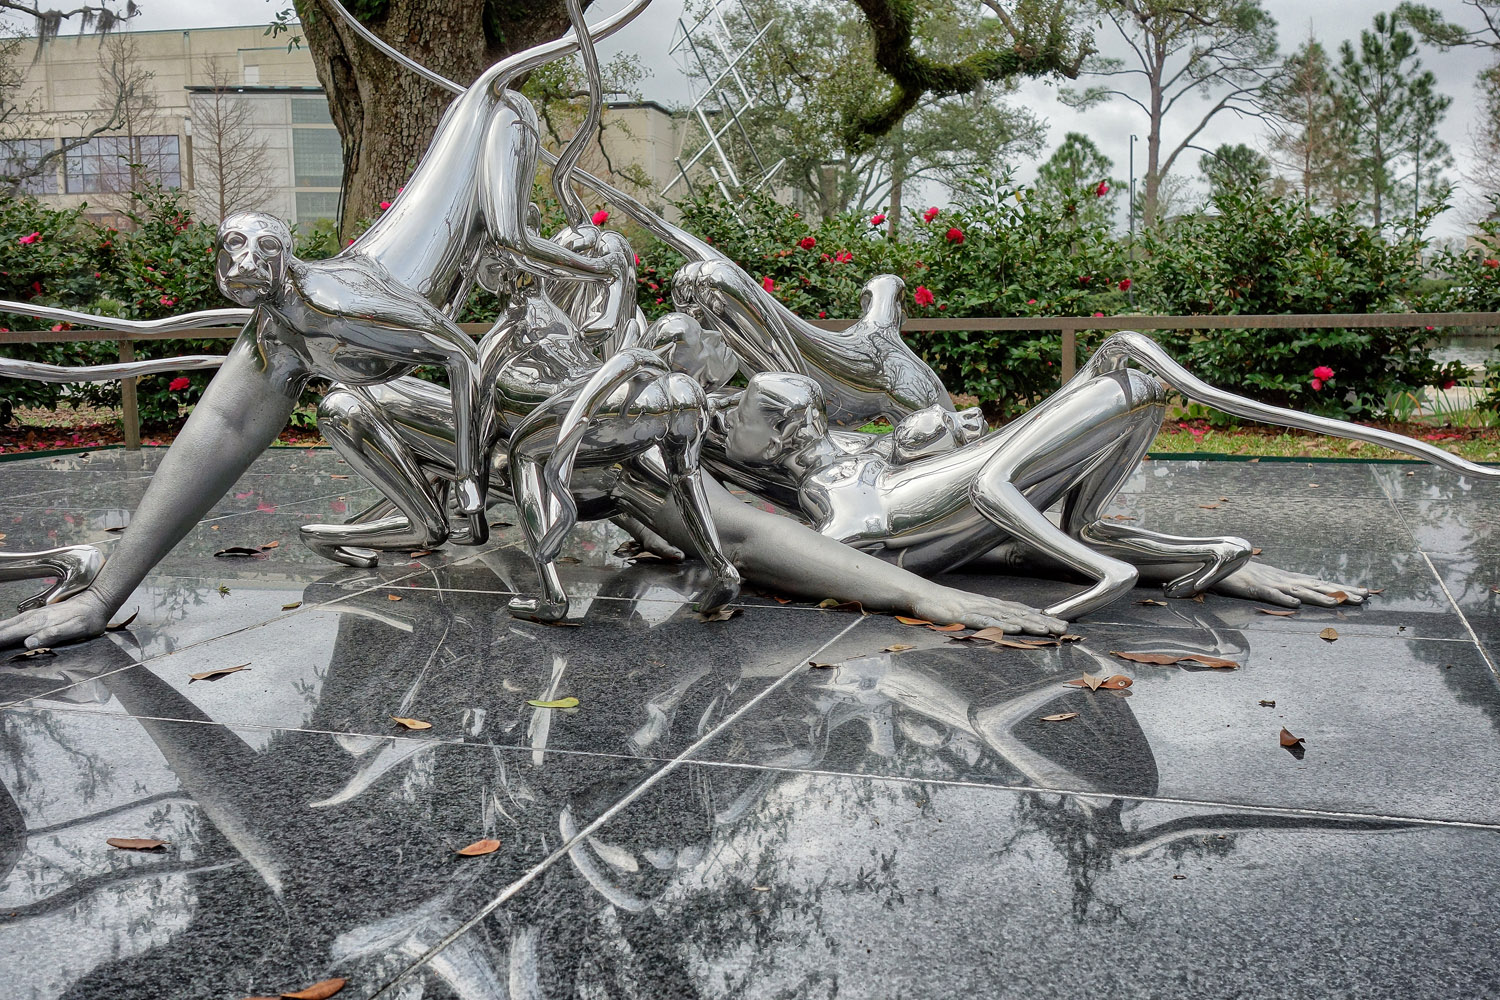 1998-2001 Stainless steel, 3/6 41 1/4 x 66 x 85 1/2 in (104.77 x 167.64 x 217.17 cm) New Orleans Museum of Art, Sculpture Garden - Marc Straus Gallery